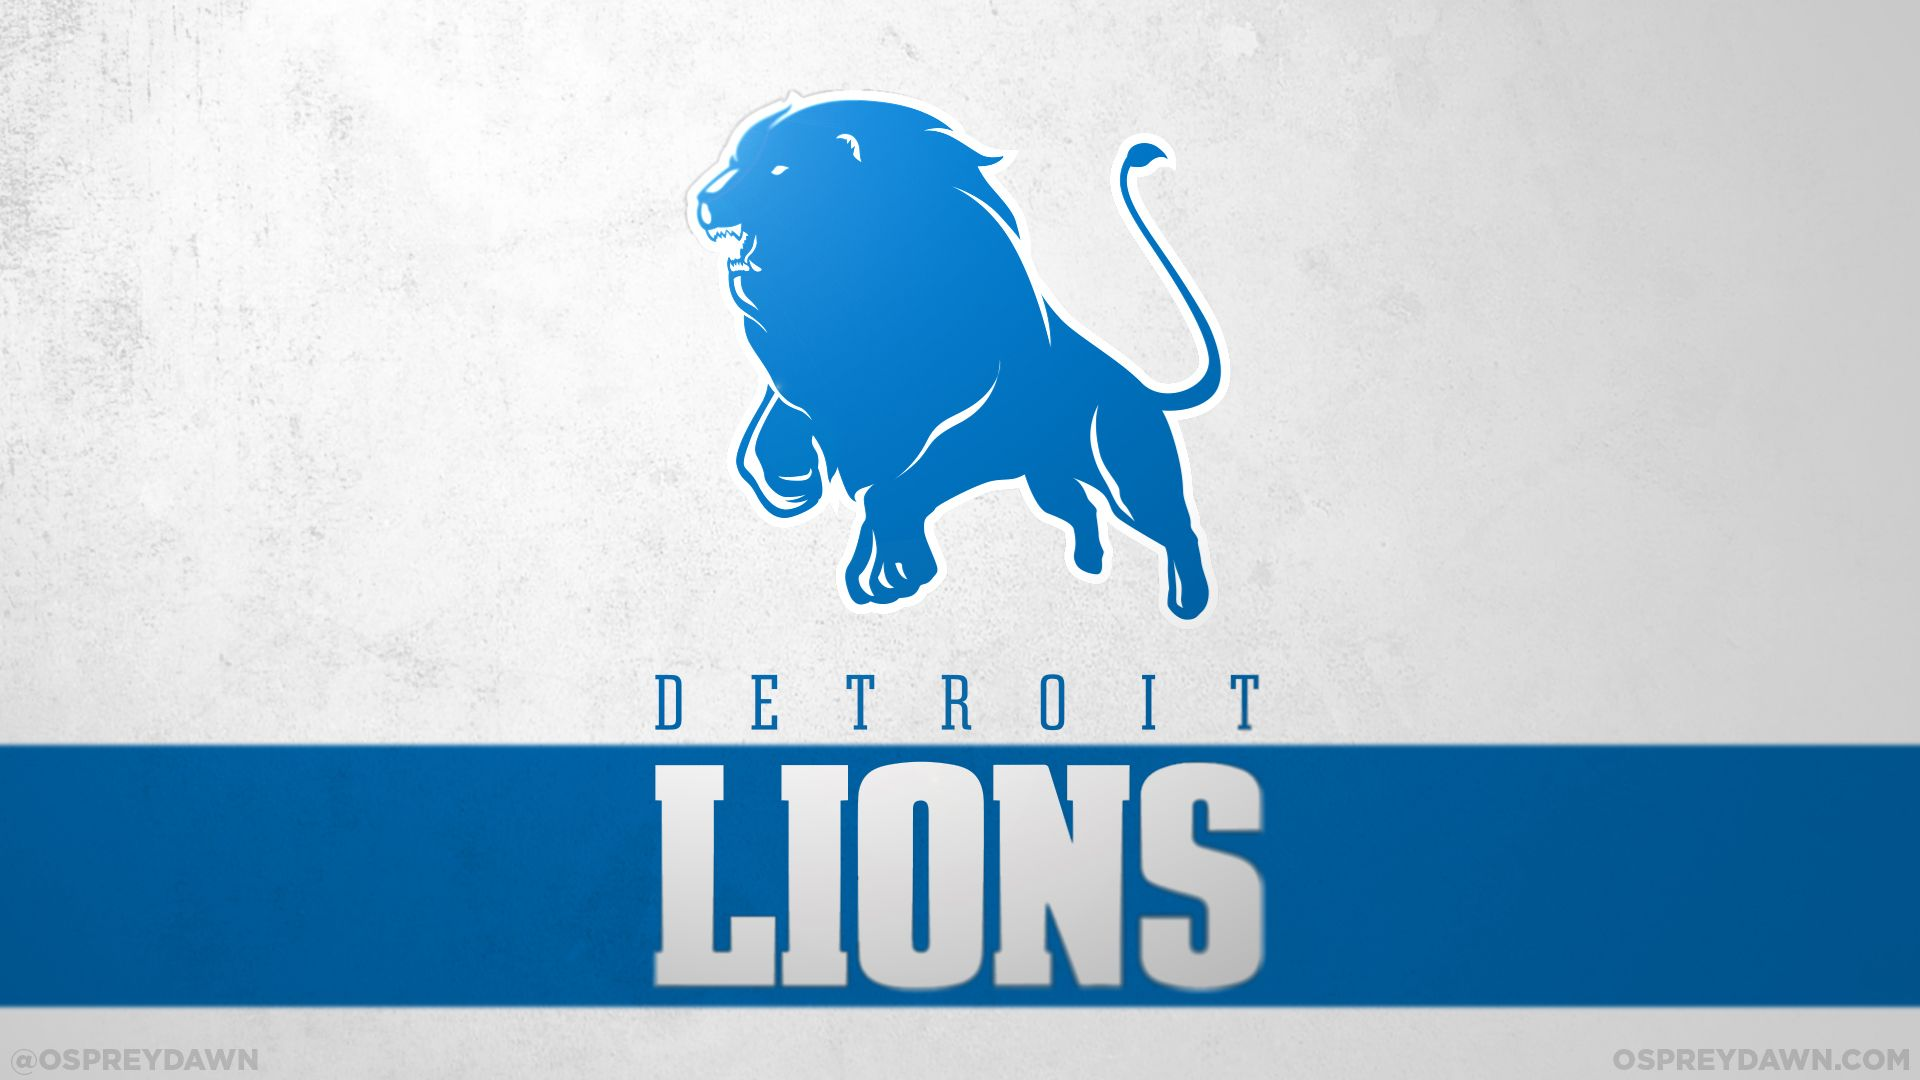 The Detroit Lions | Sports | Pinterest